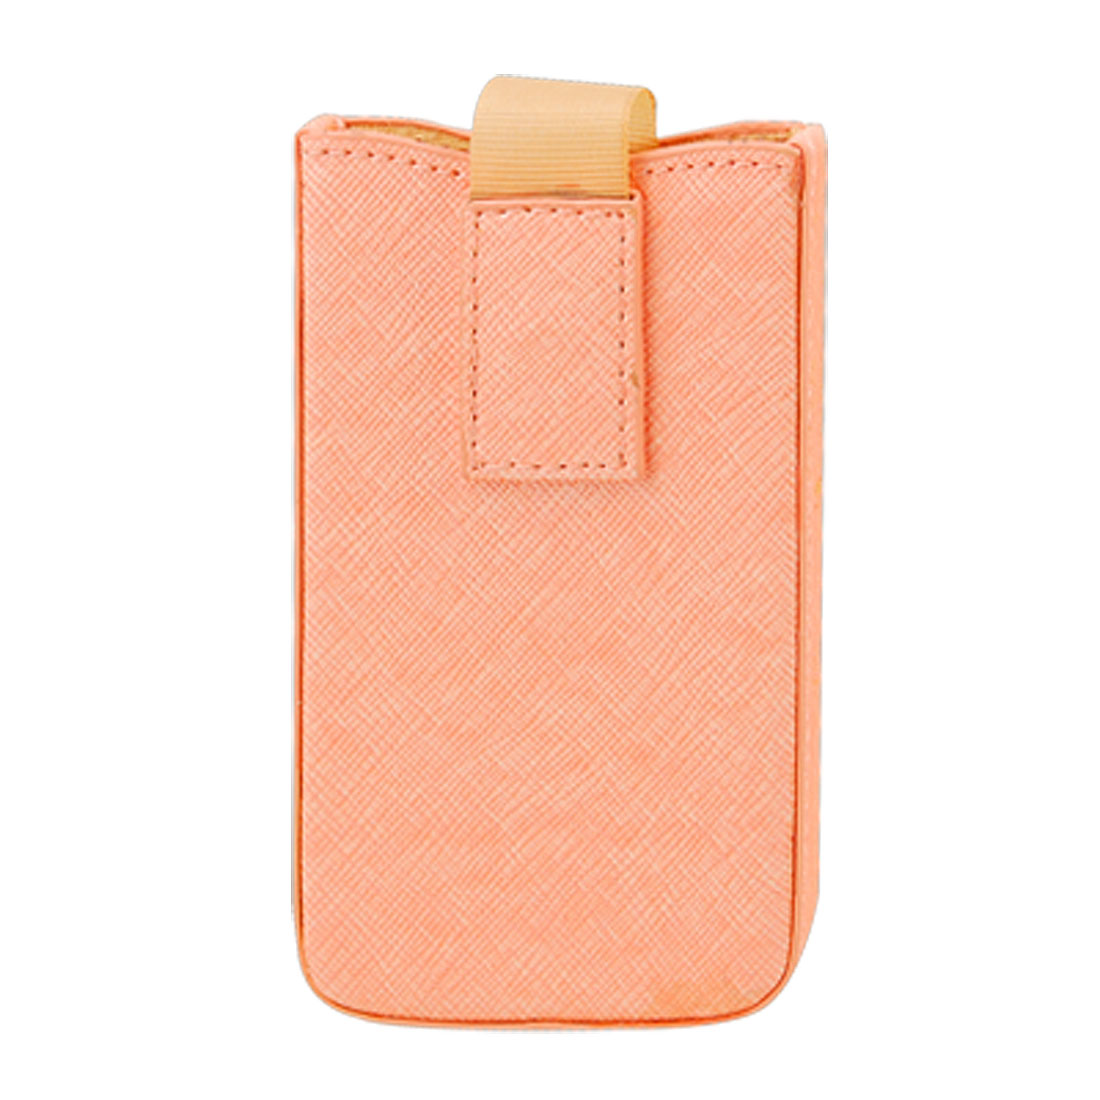 Orange Faux Leather Pull Up Phone Pouch Case for Apple iPhone 4 4G